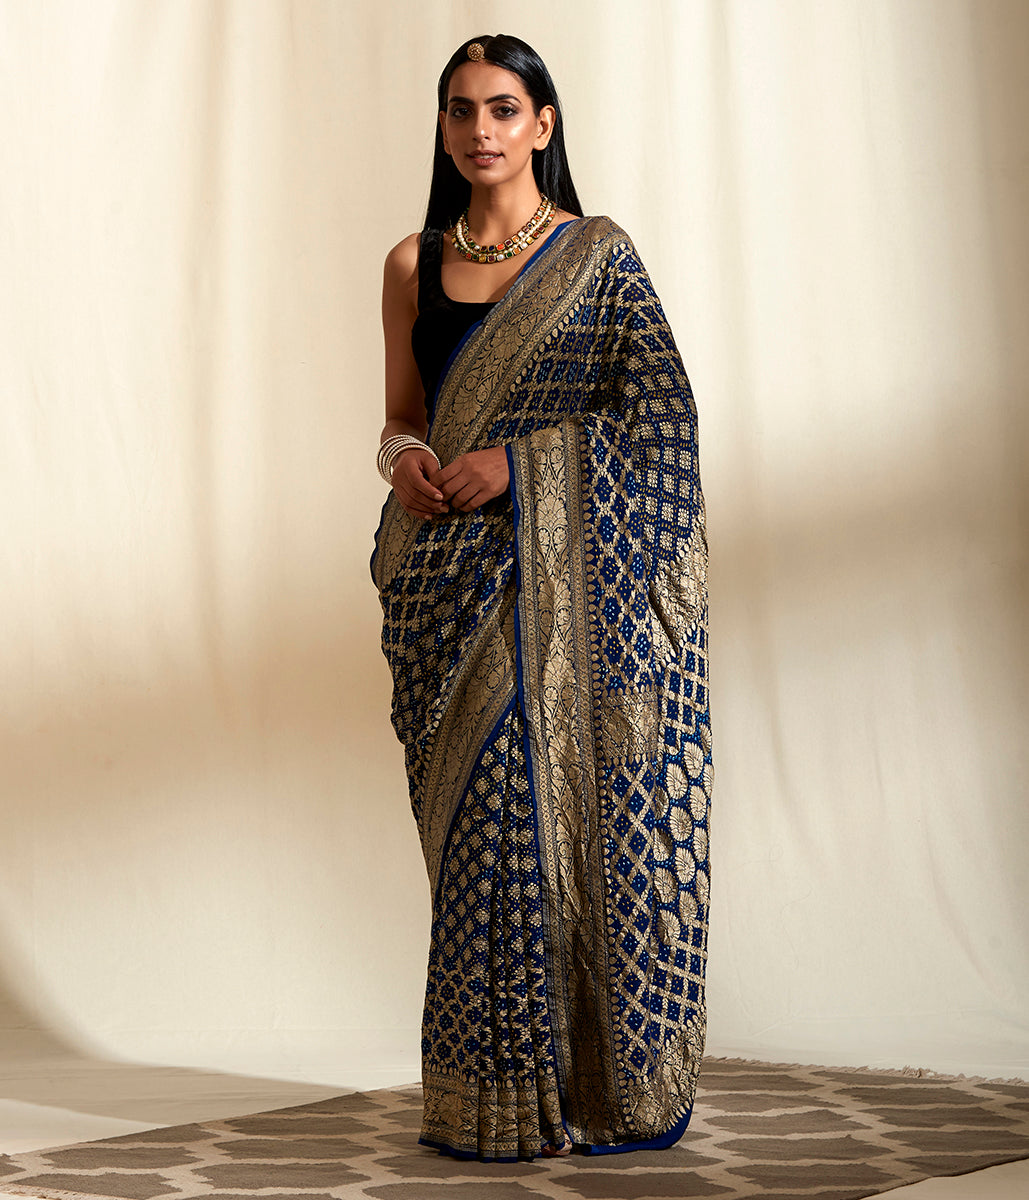 Handwoven Banarasi Bandhej Saree in Navy Blue